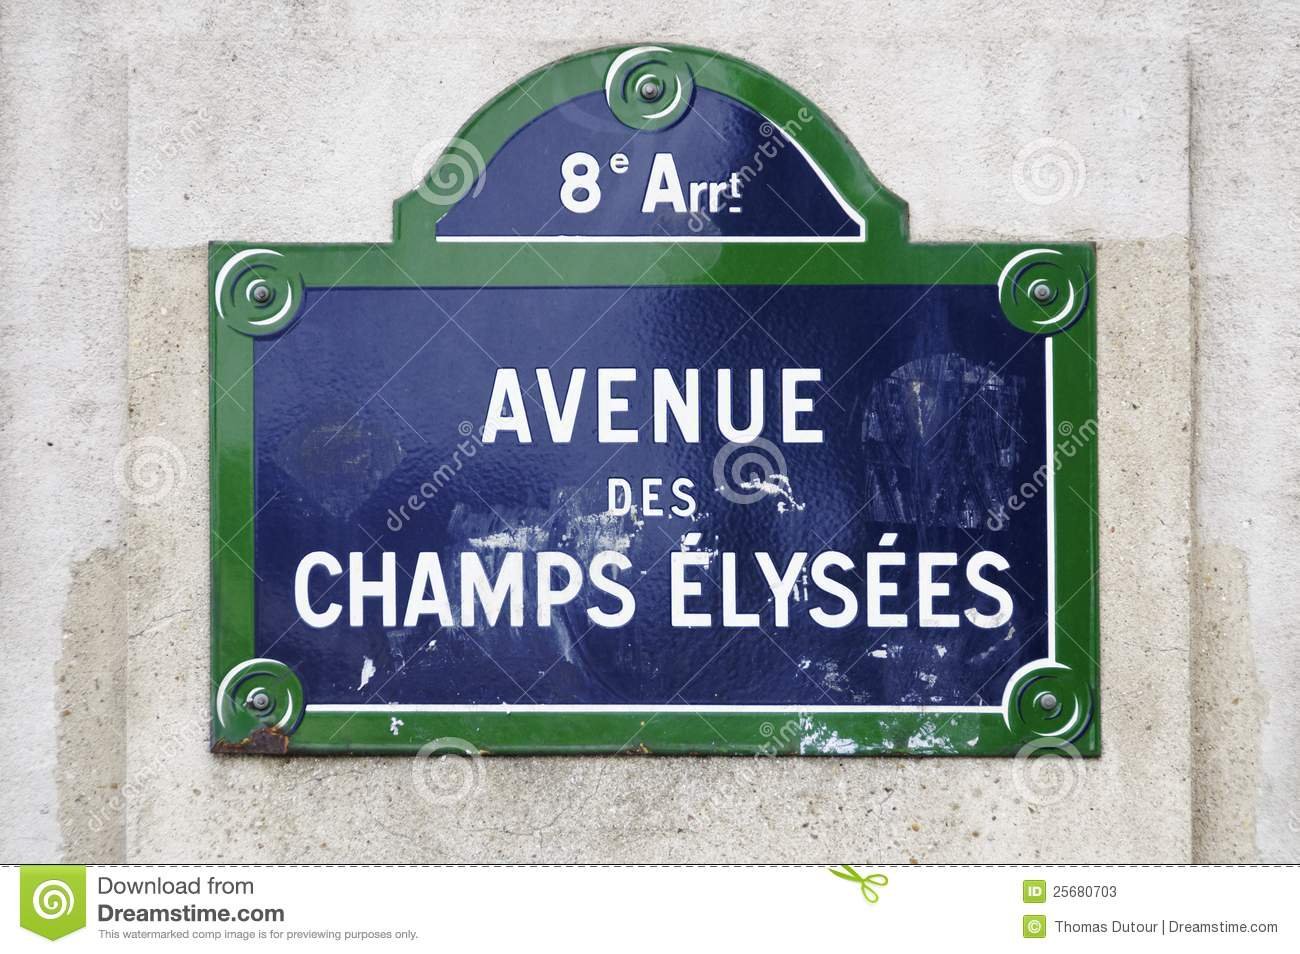 avenue des champs elysees sign stock image image 25680703. Black Bedroom Furniture Sets. Home Design Ideas